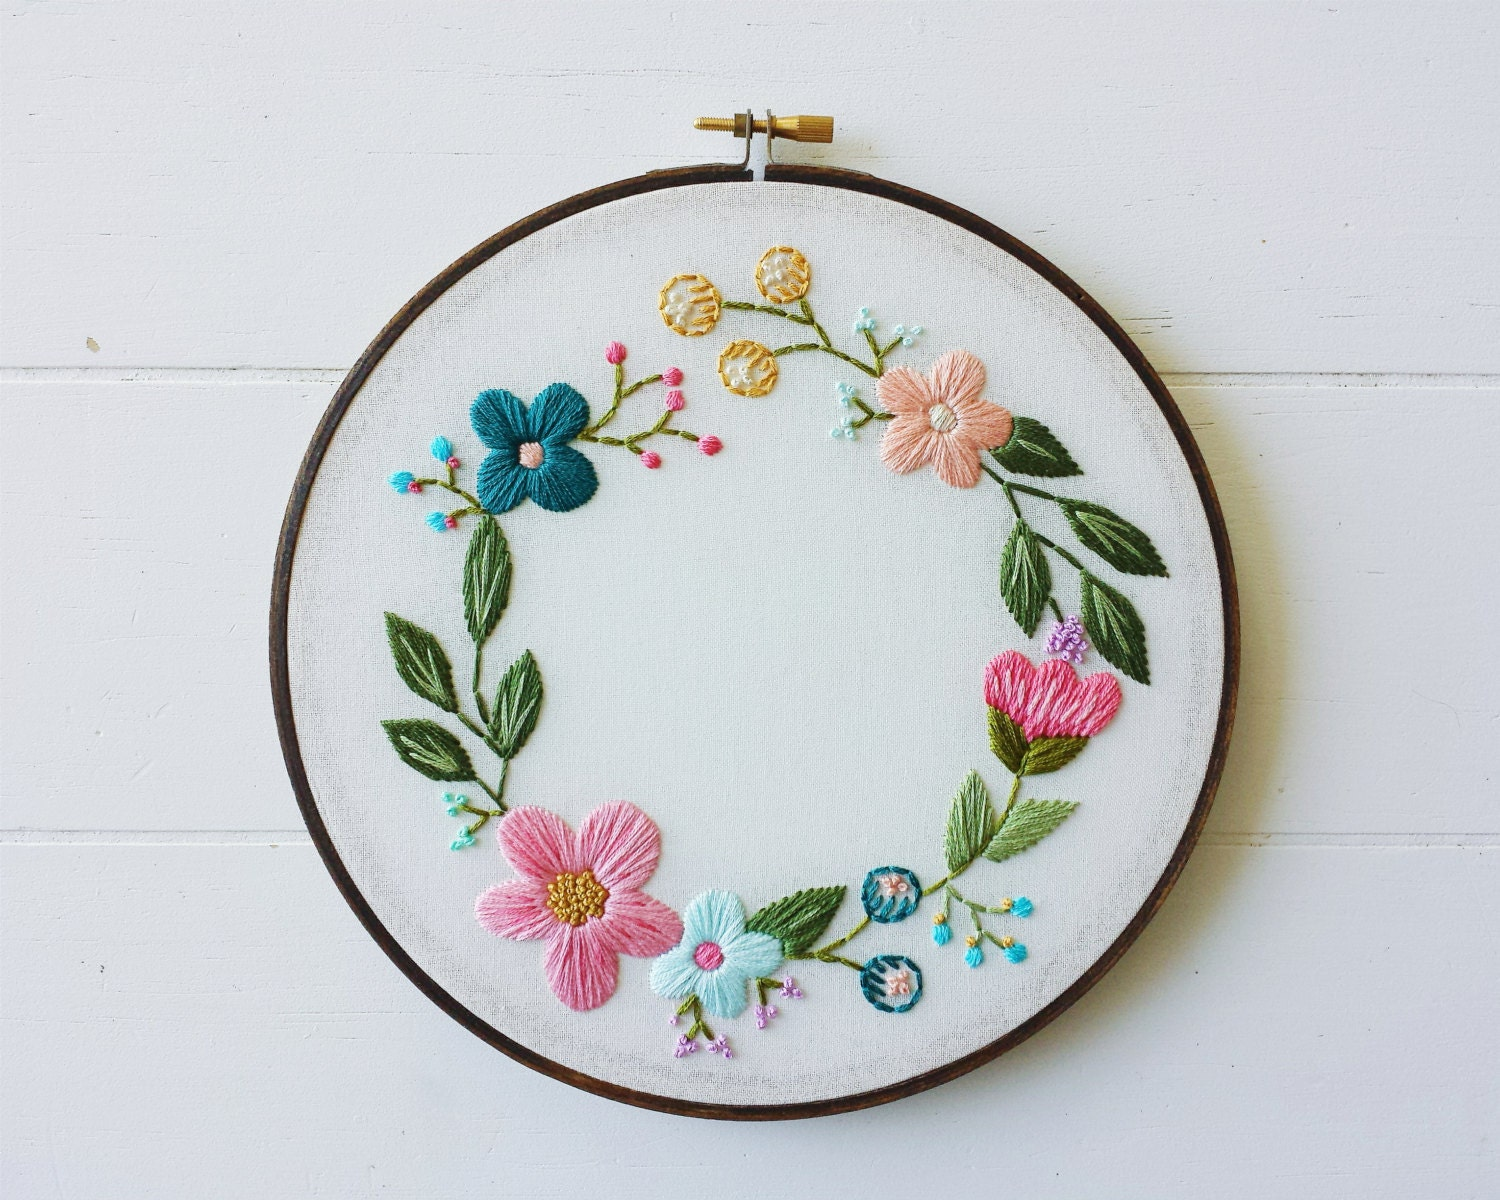 Hand embroidered art floral embroidery hoop wreath